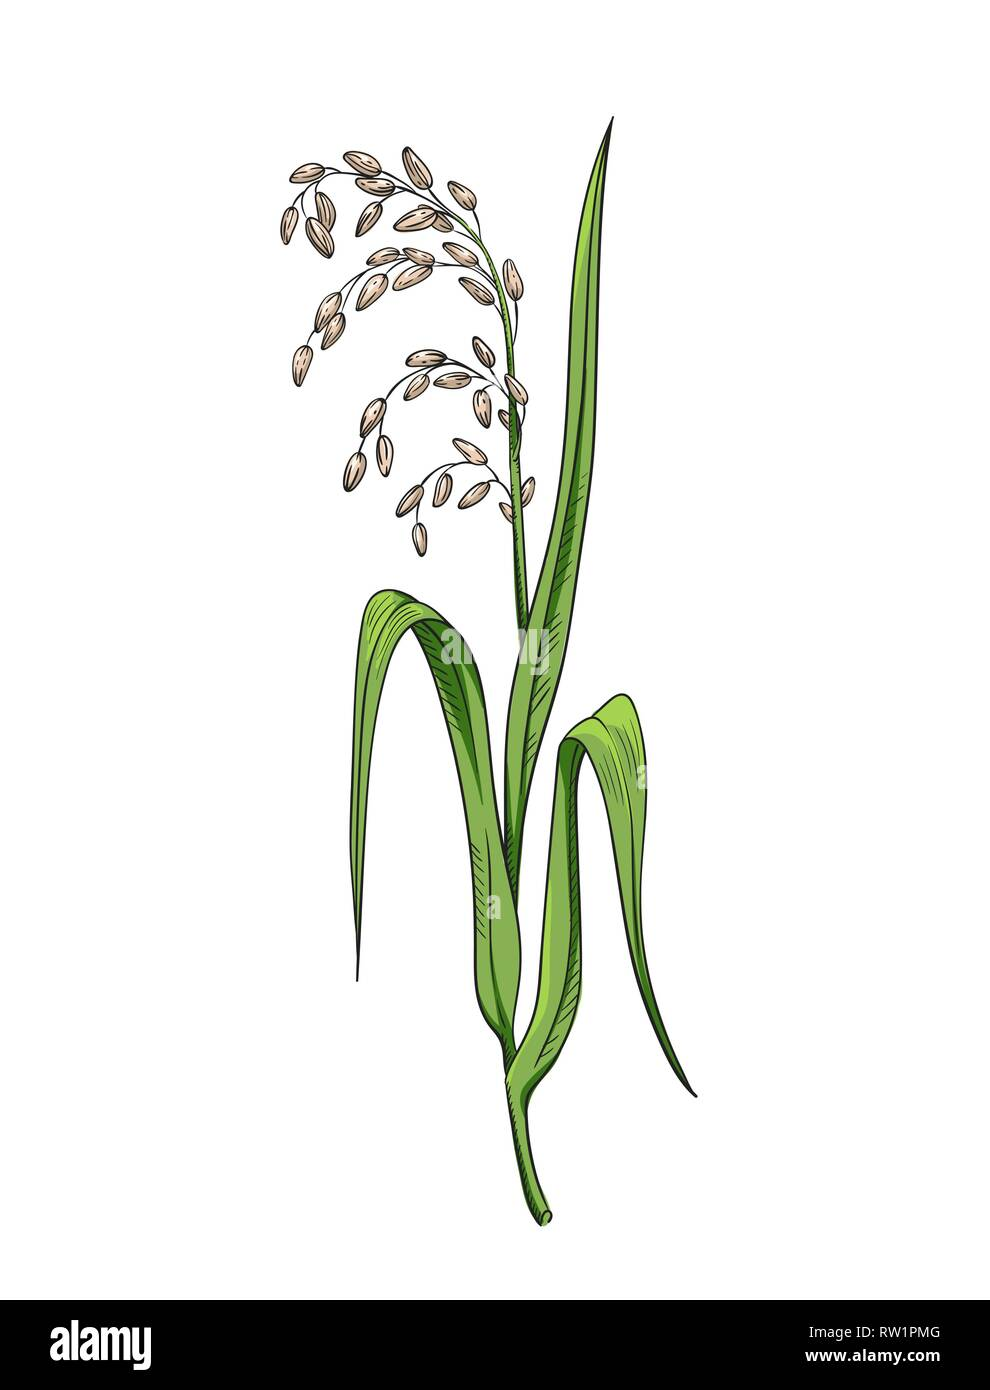 hight resolution of rice plant botanical illustration color vector drawing of rice twig with leaves and earof ripe grains